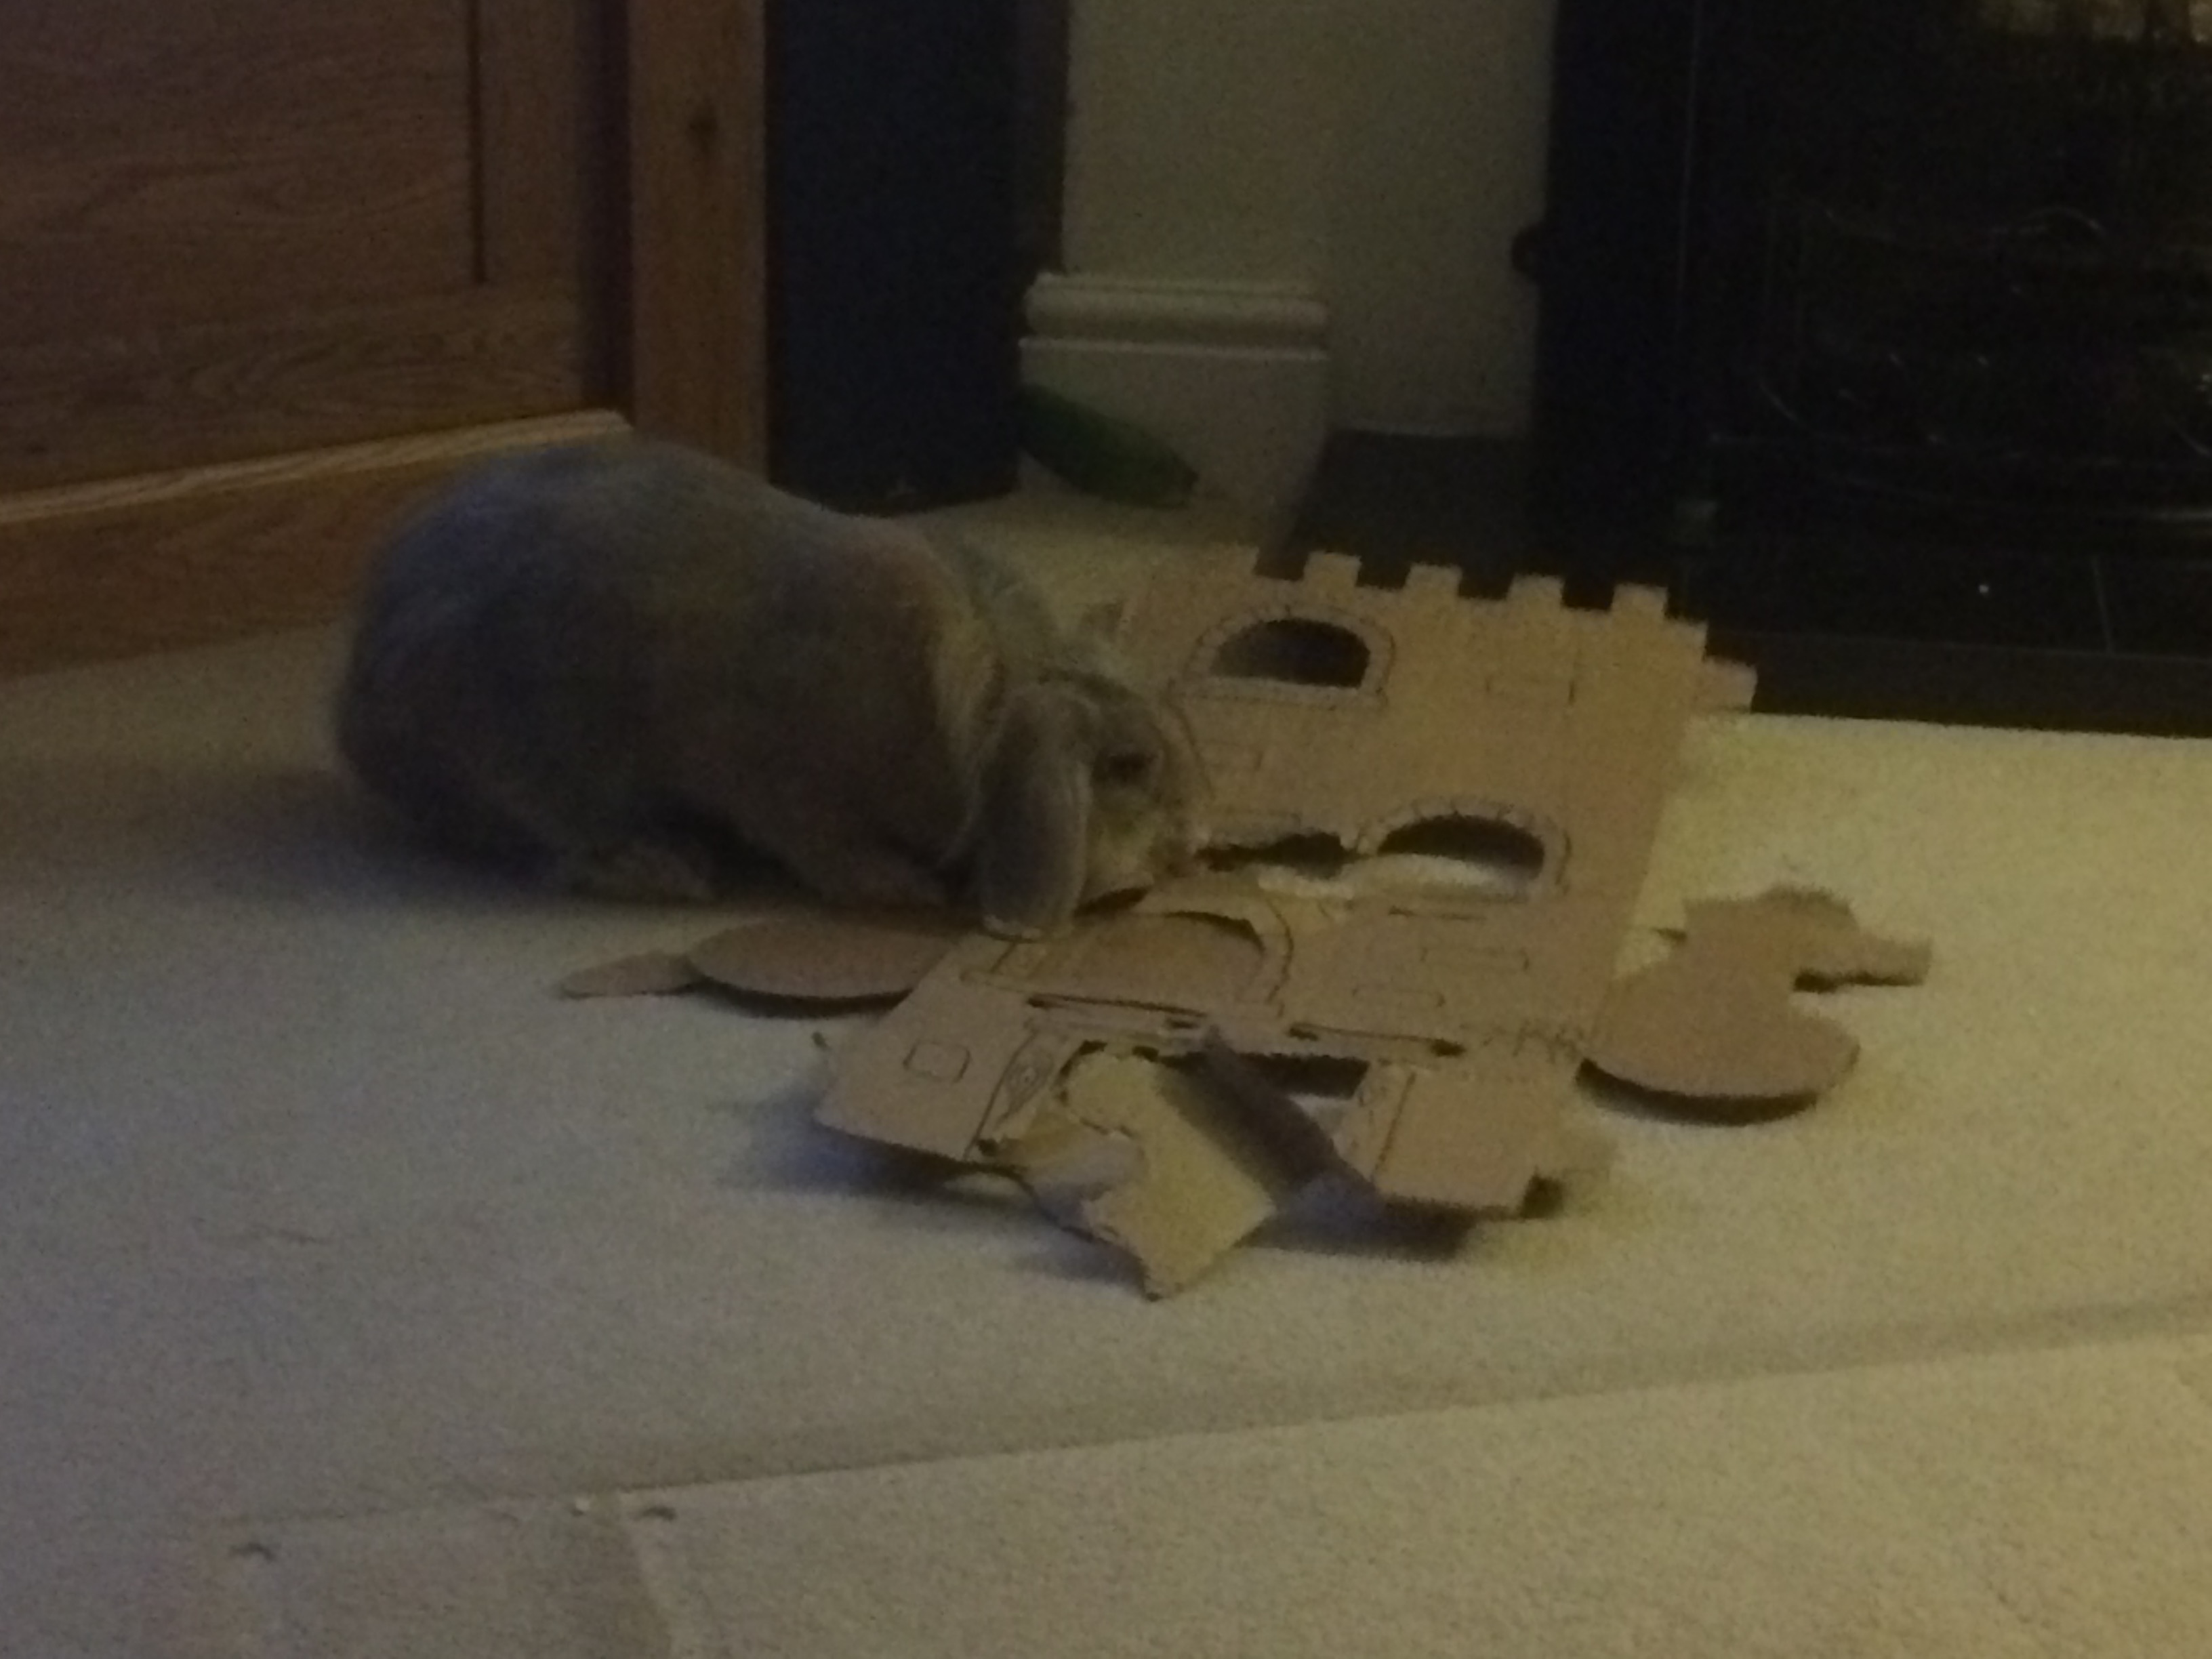 Daisy with her cardboard castle